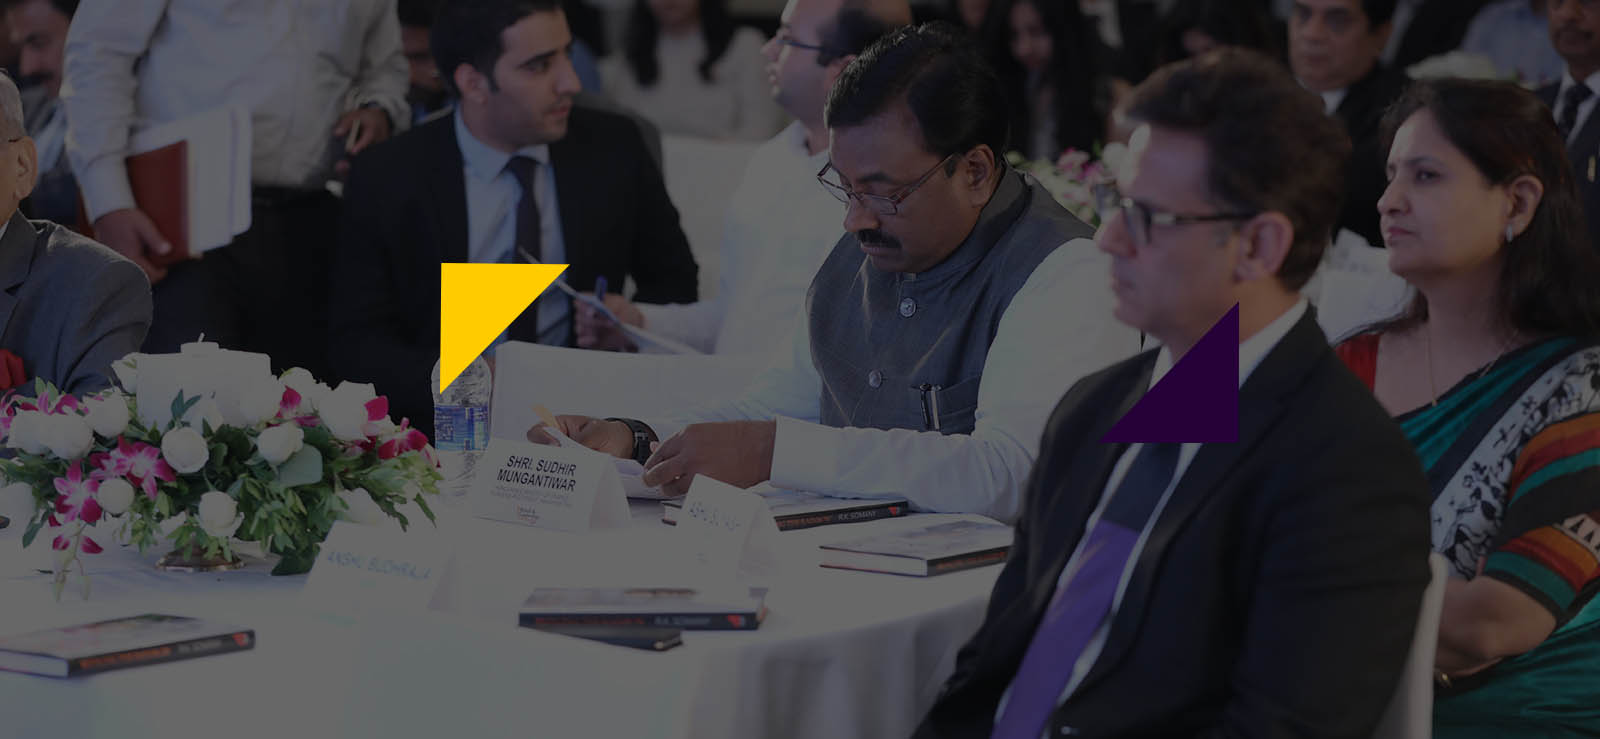 Header image for the Tourism Roadshow Events and Press Meets page of the Pegasus Events Pvt Ltd website.